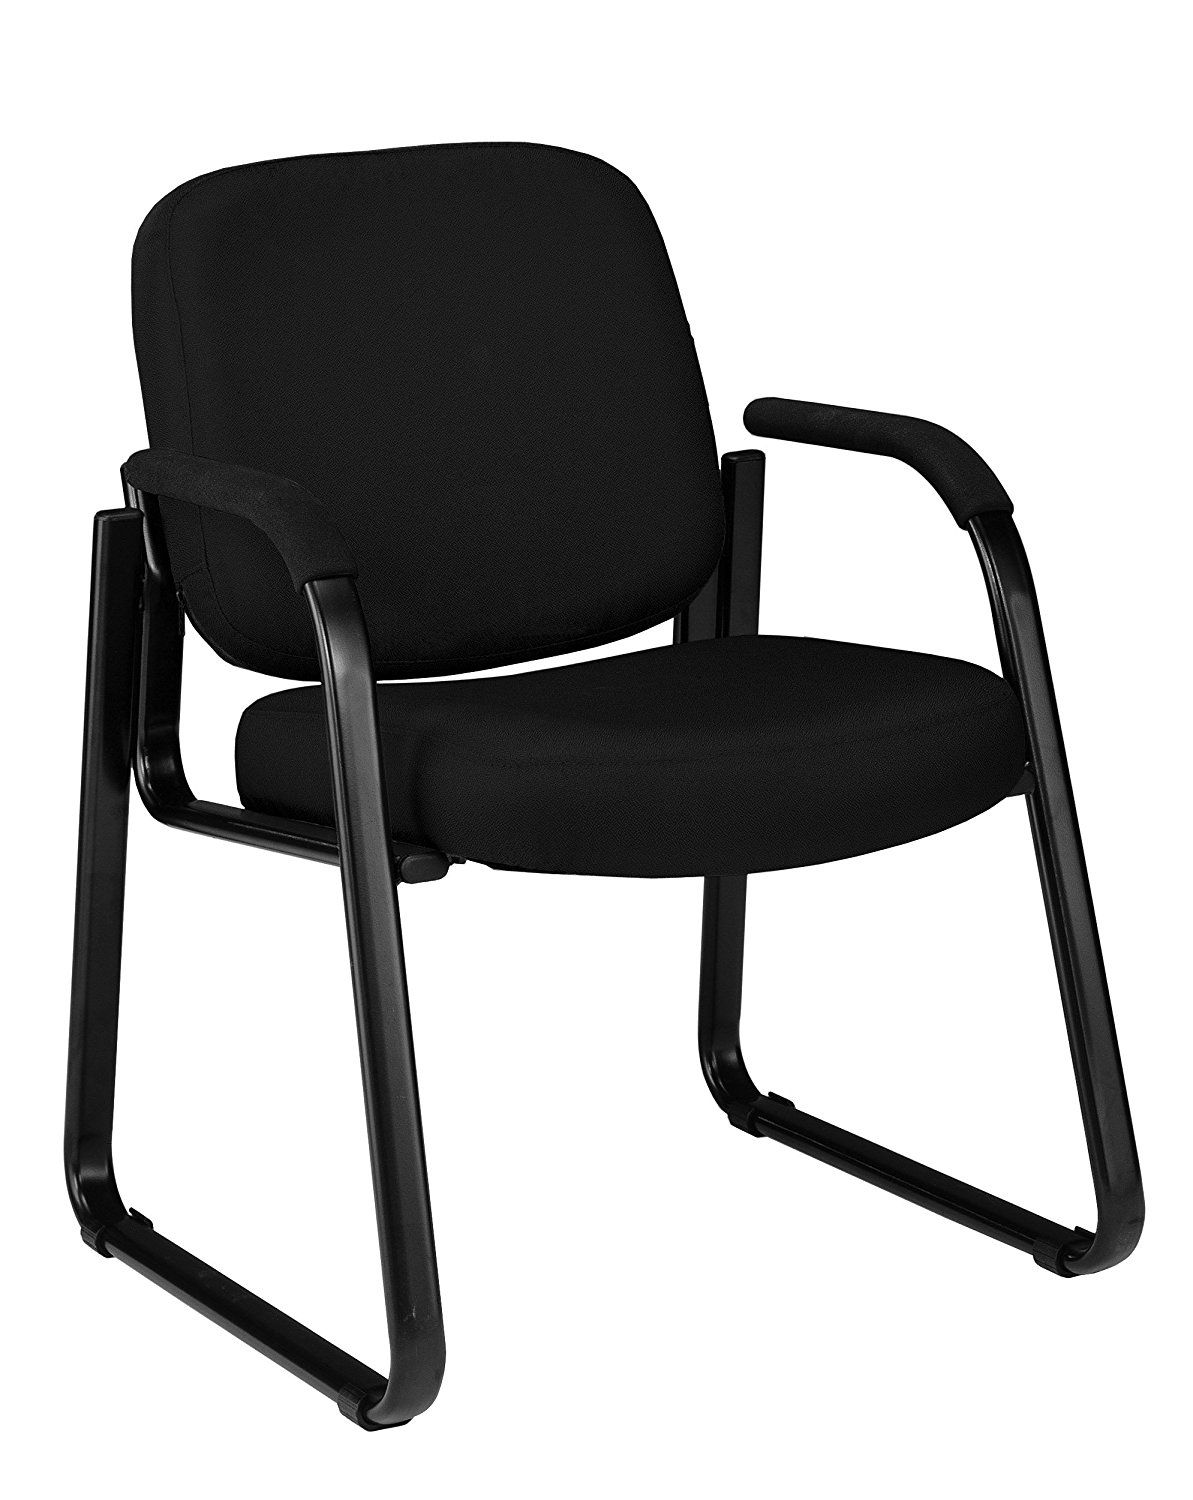 Upholstered Guest / Reception Chair from OFM